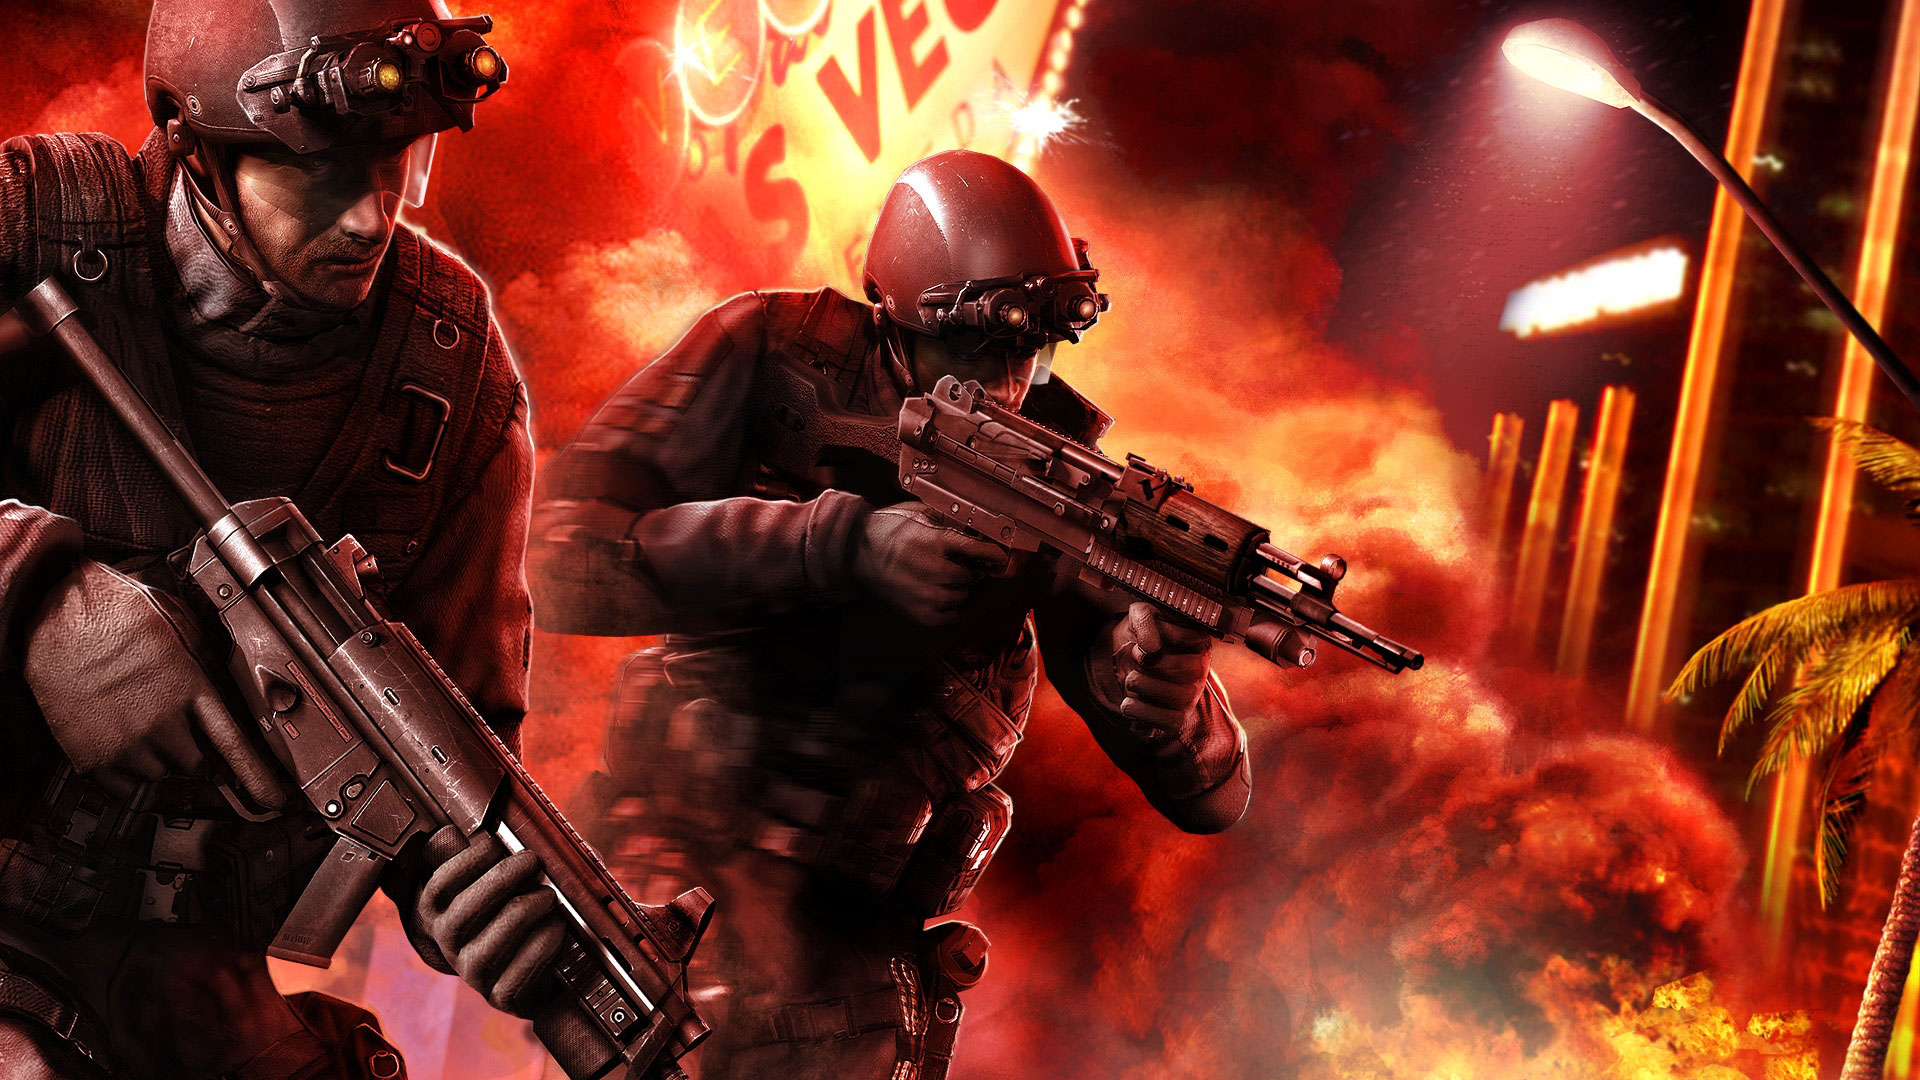 Tom Clancys Rainbow Six Vegas 2 Wallpapers HD Wallpapers 1920x1080